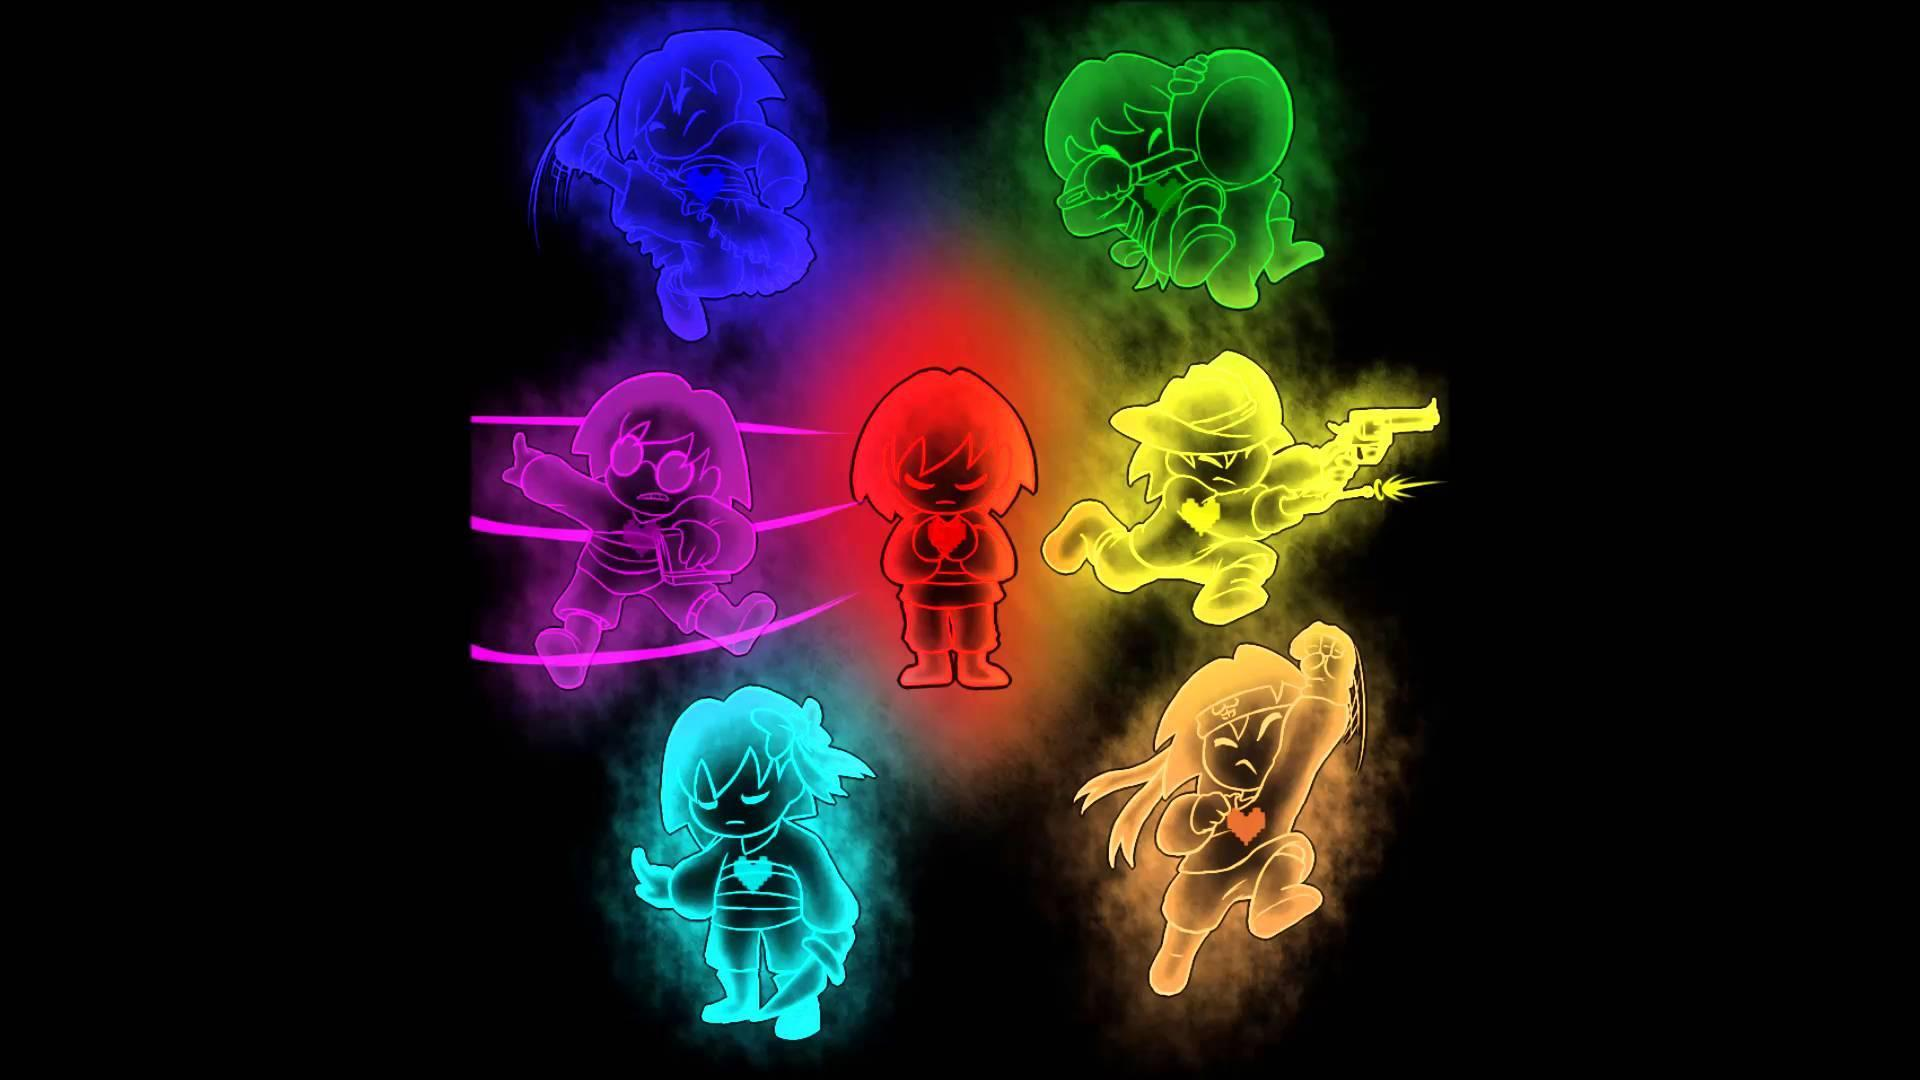 What Undertale soul are you?